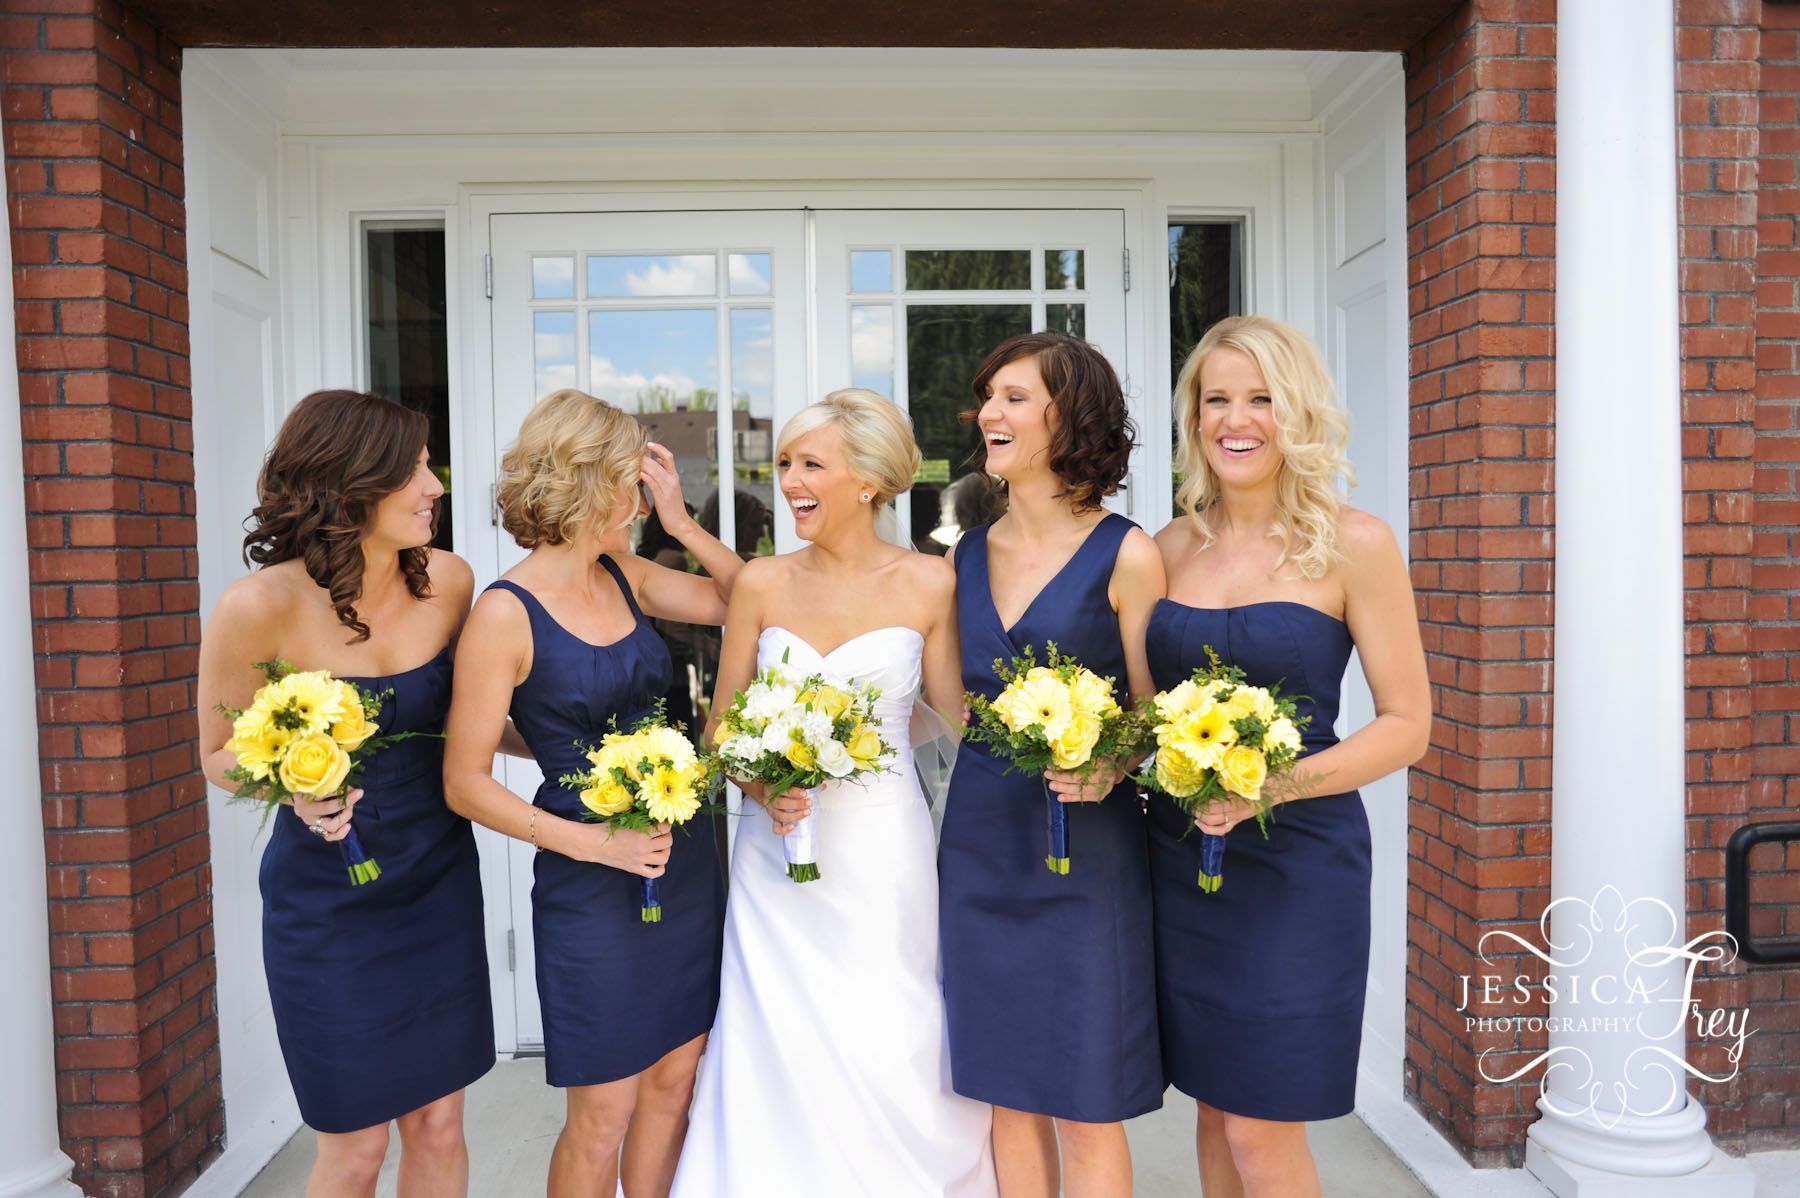 Navy and yellow wedding i love how all the bridesmaids are in navy and yellow wedding i love how all the bridesmaids are in different style dresses ombrellifo Images